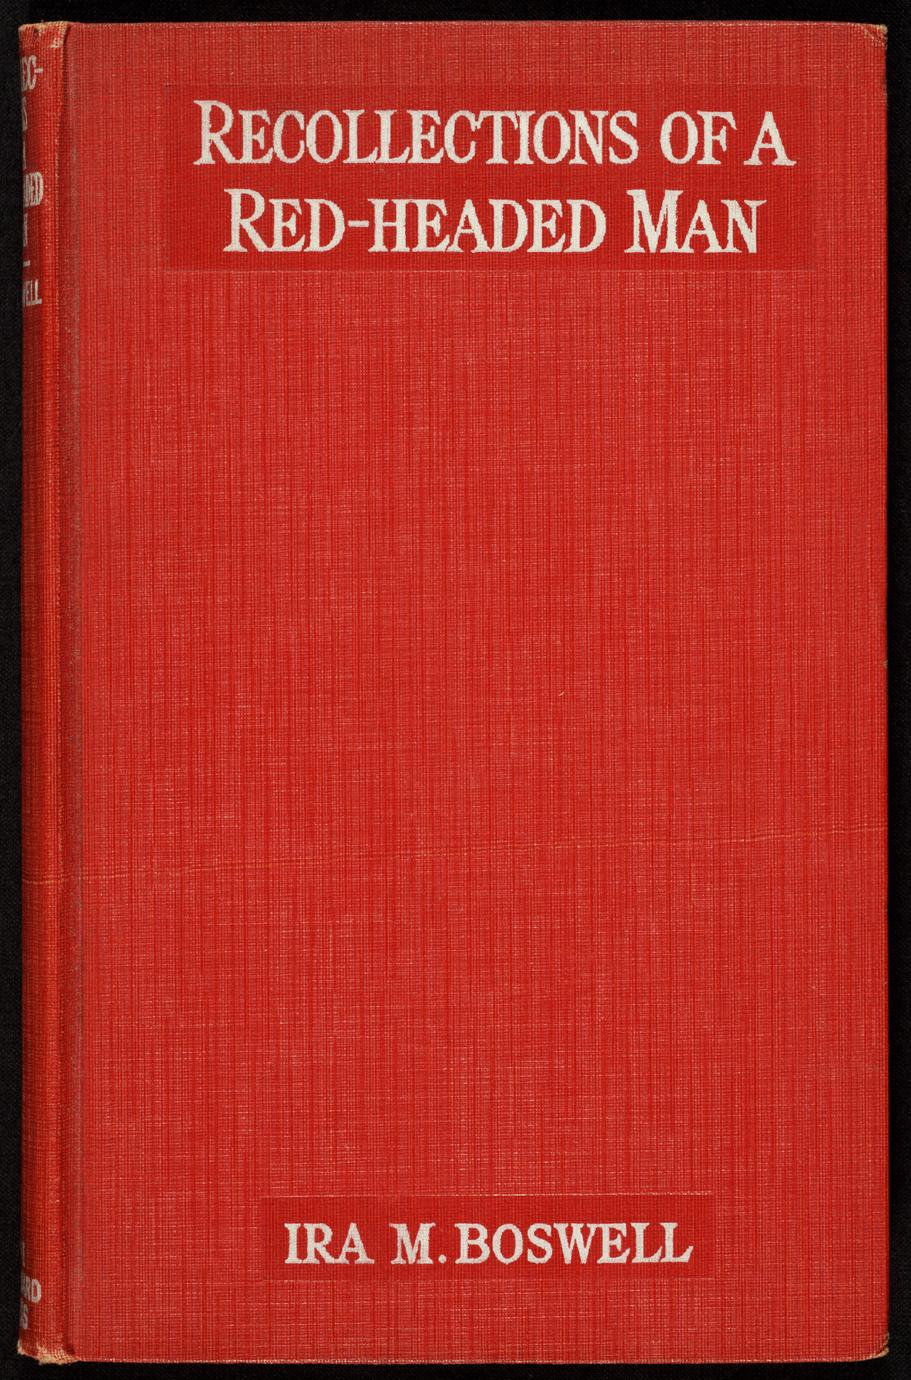 Recollections of a red-headed man (1 of 2)